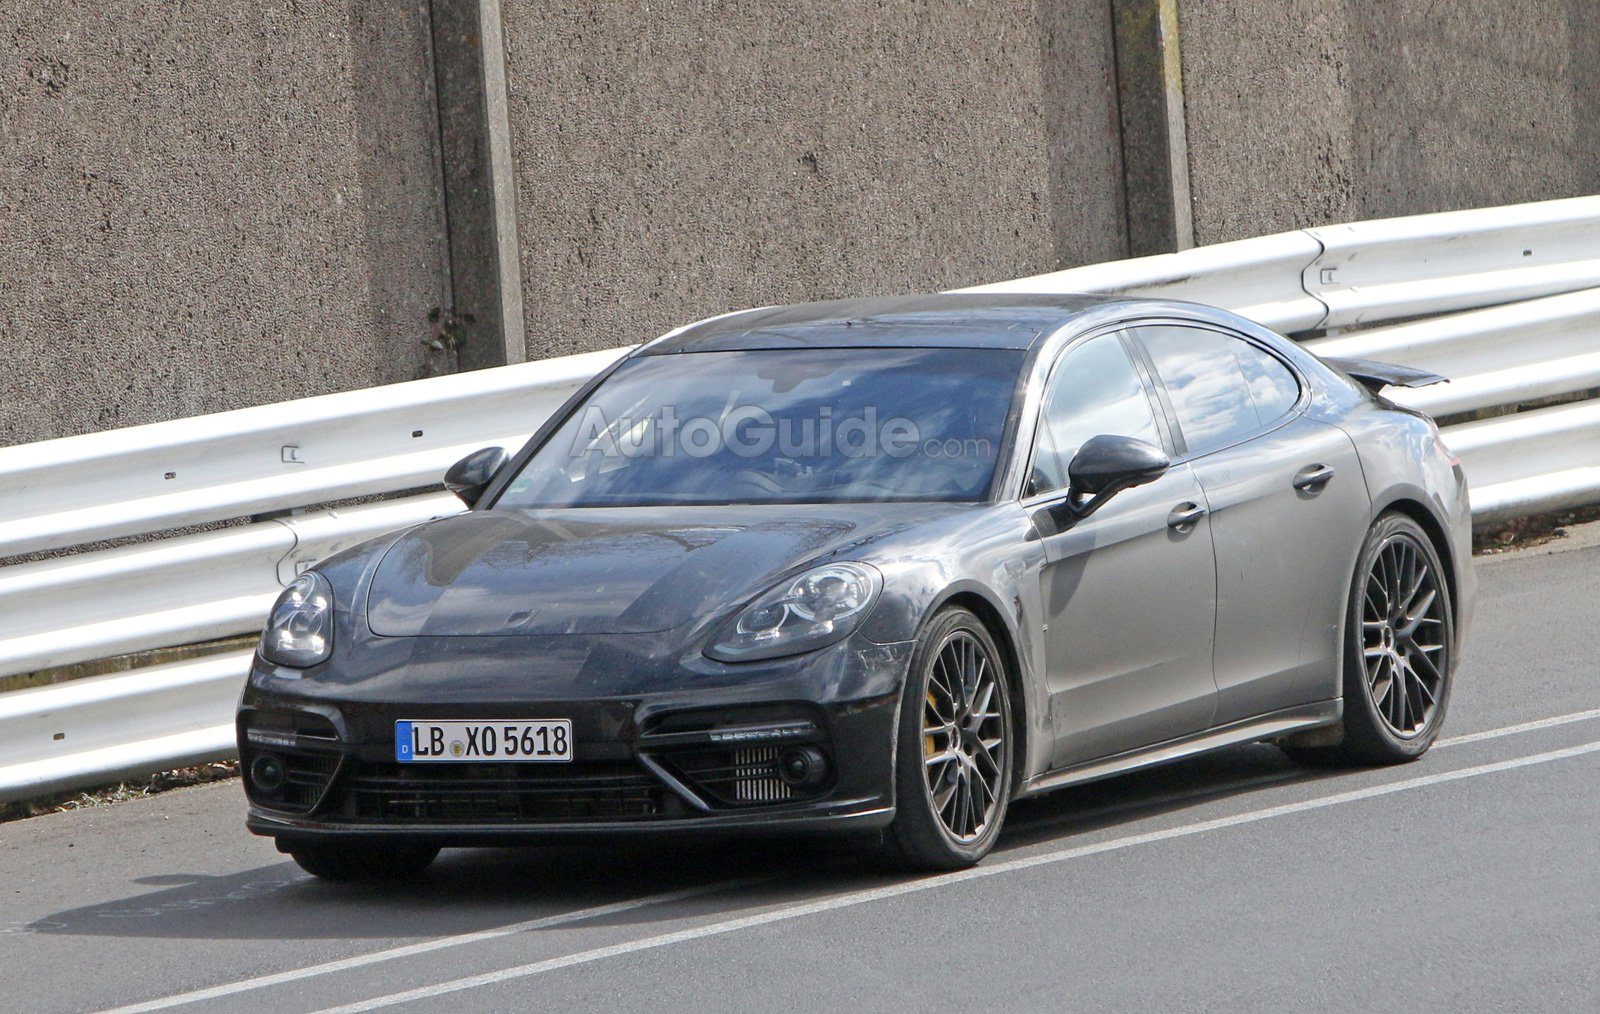 2017 Porsche Panamera Spied Lapping the Nurburgring Without Disguise